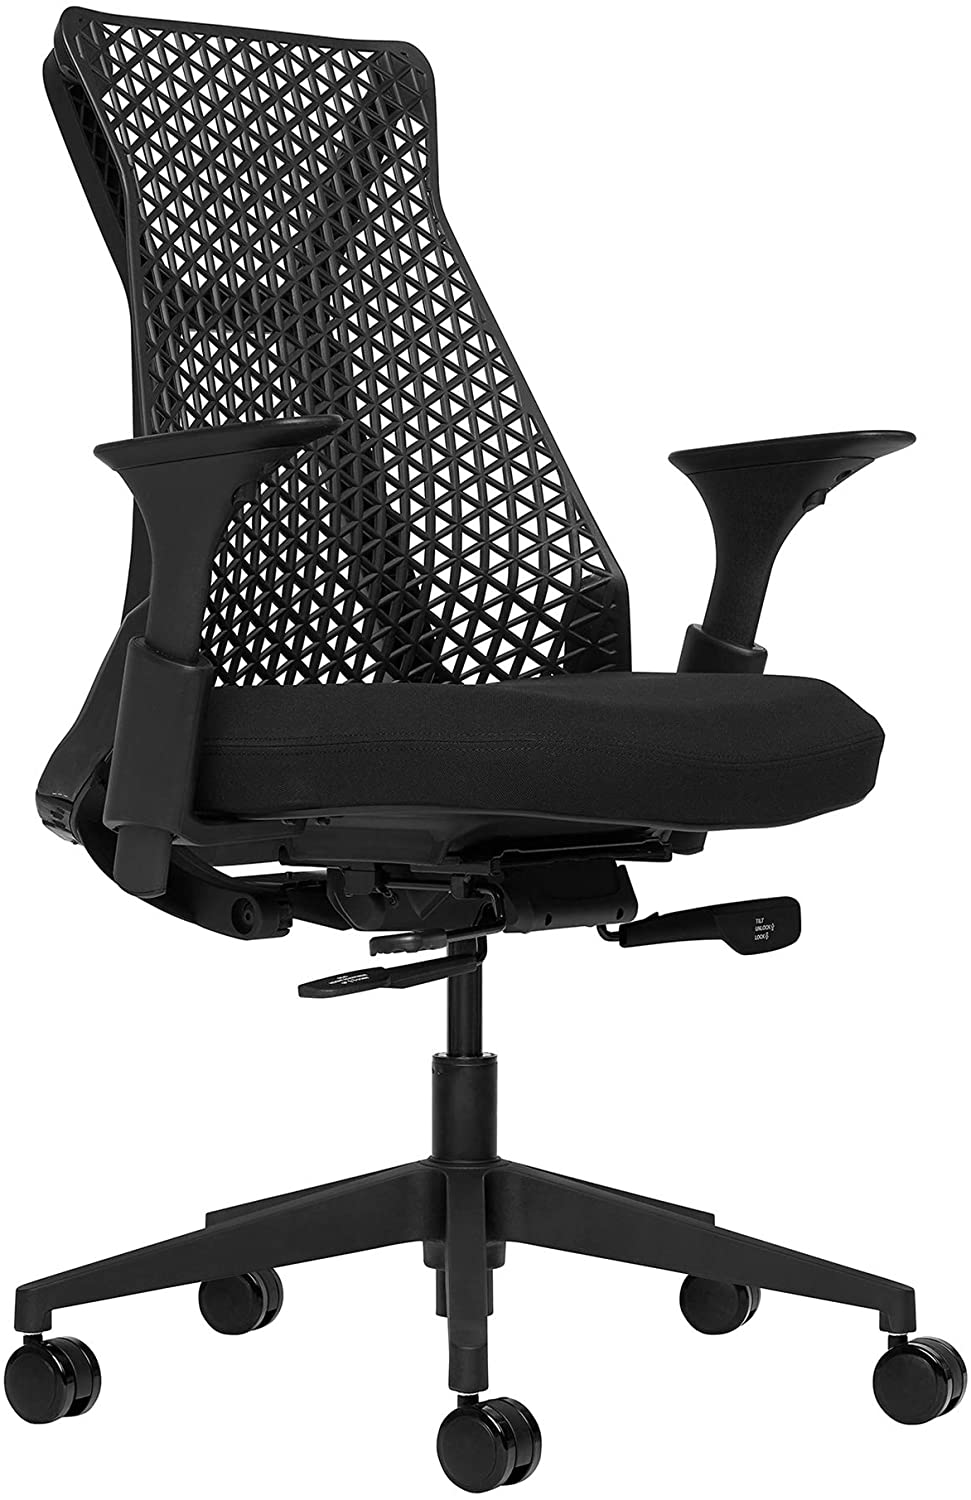 Bowery Fully Adjustable Management Office Chair